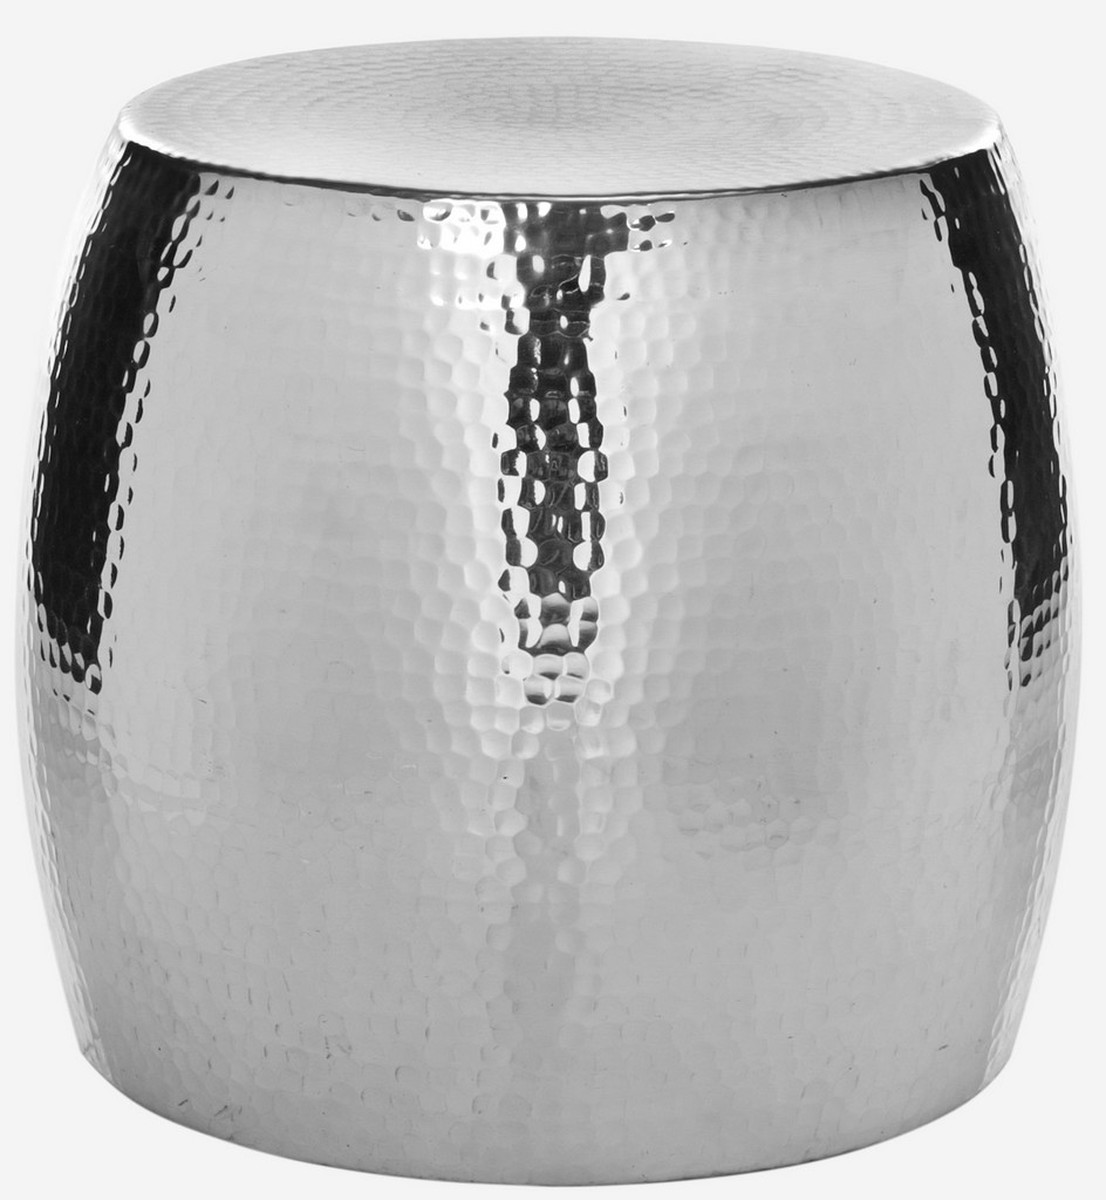 ODIN ROUND HAMMERED STOOL FOX5504A ACCENT TABLES. Color: Silver